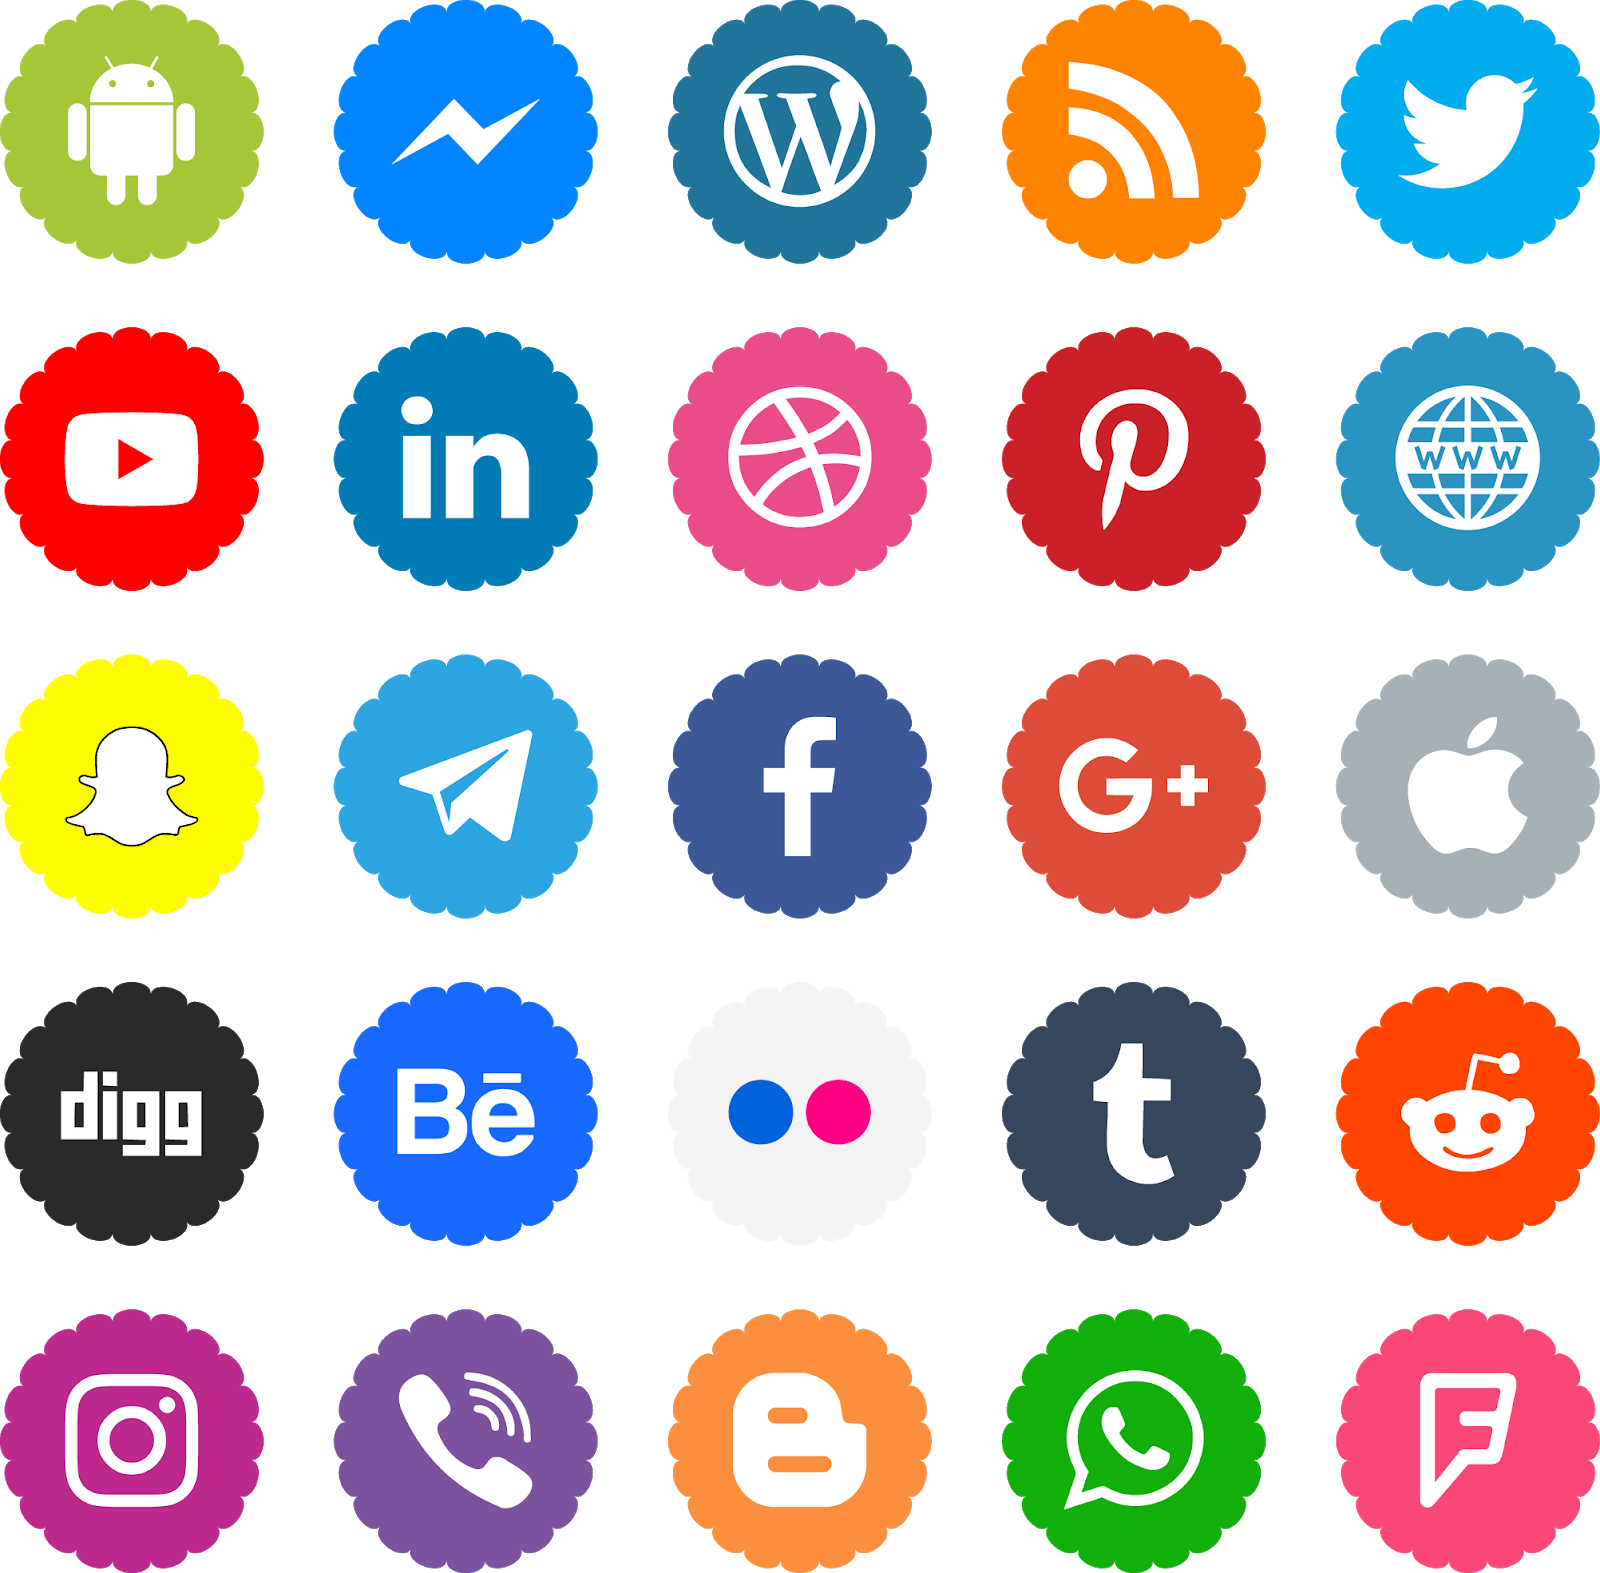 download icons bottons social media color svg eps png psd ai vector free #logo #social #svg #eps #png #psd #ai #vector #color #free #art #vectors #vectorart #icon #logos #icons #socialmedia #photoshop #illustrator #symbol #design #web #shapes #button #frames #buttons #apps #app #smartphone #network